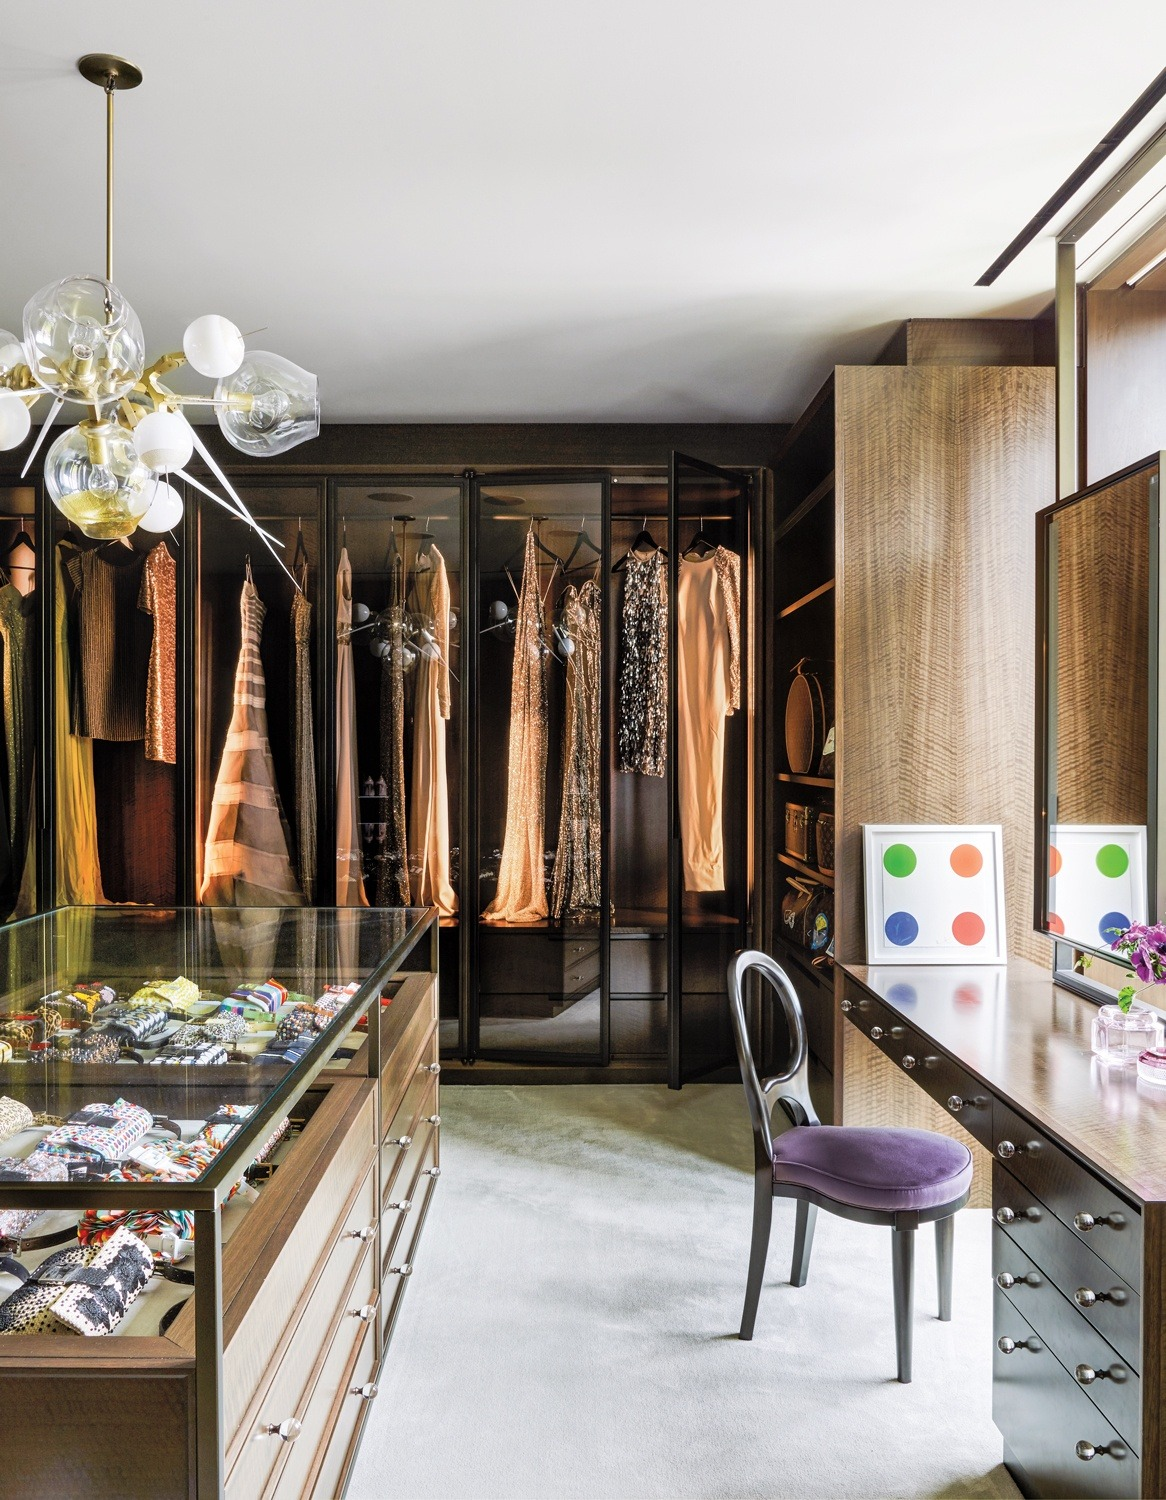 amella Roland's dressing room features a small Damien Hirst spot painting